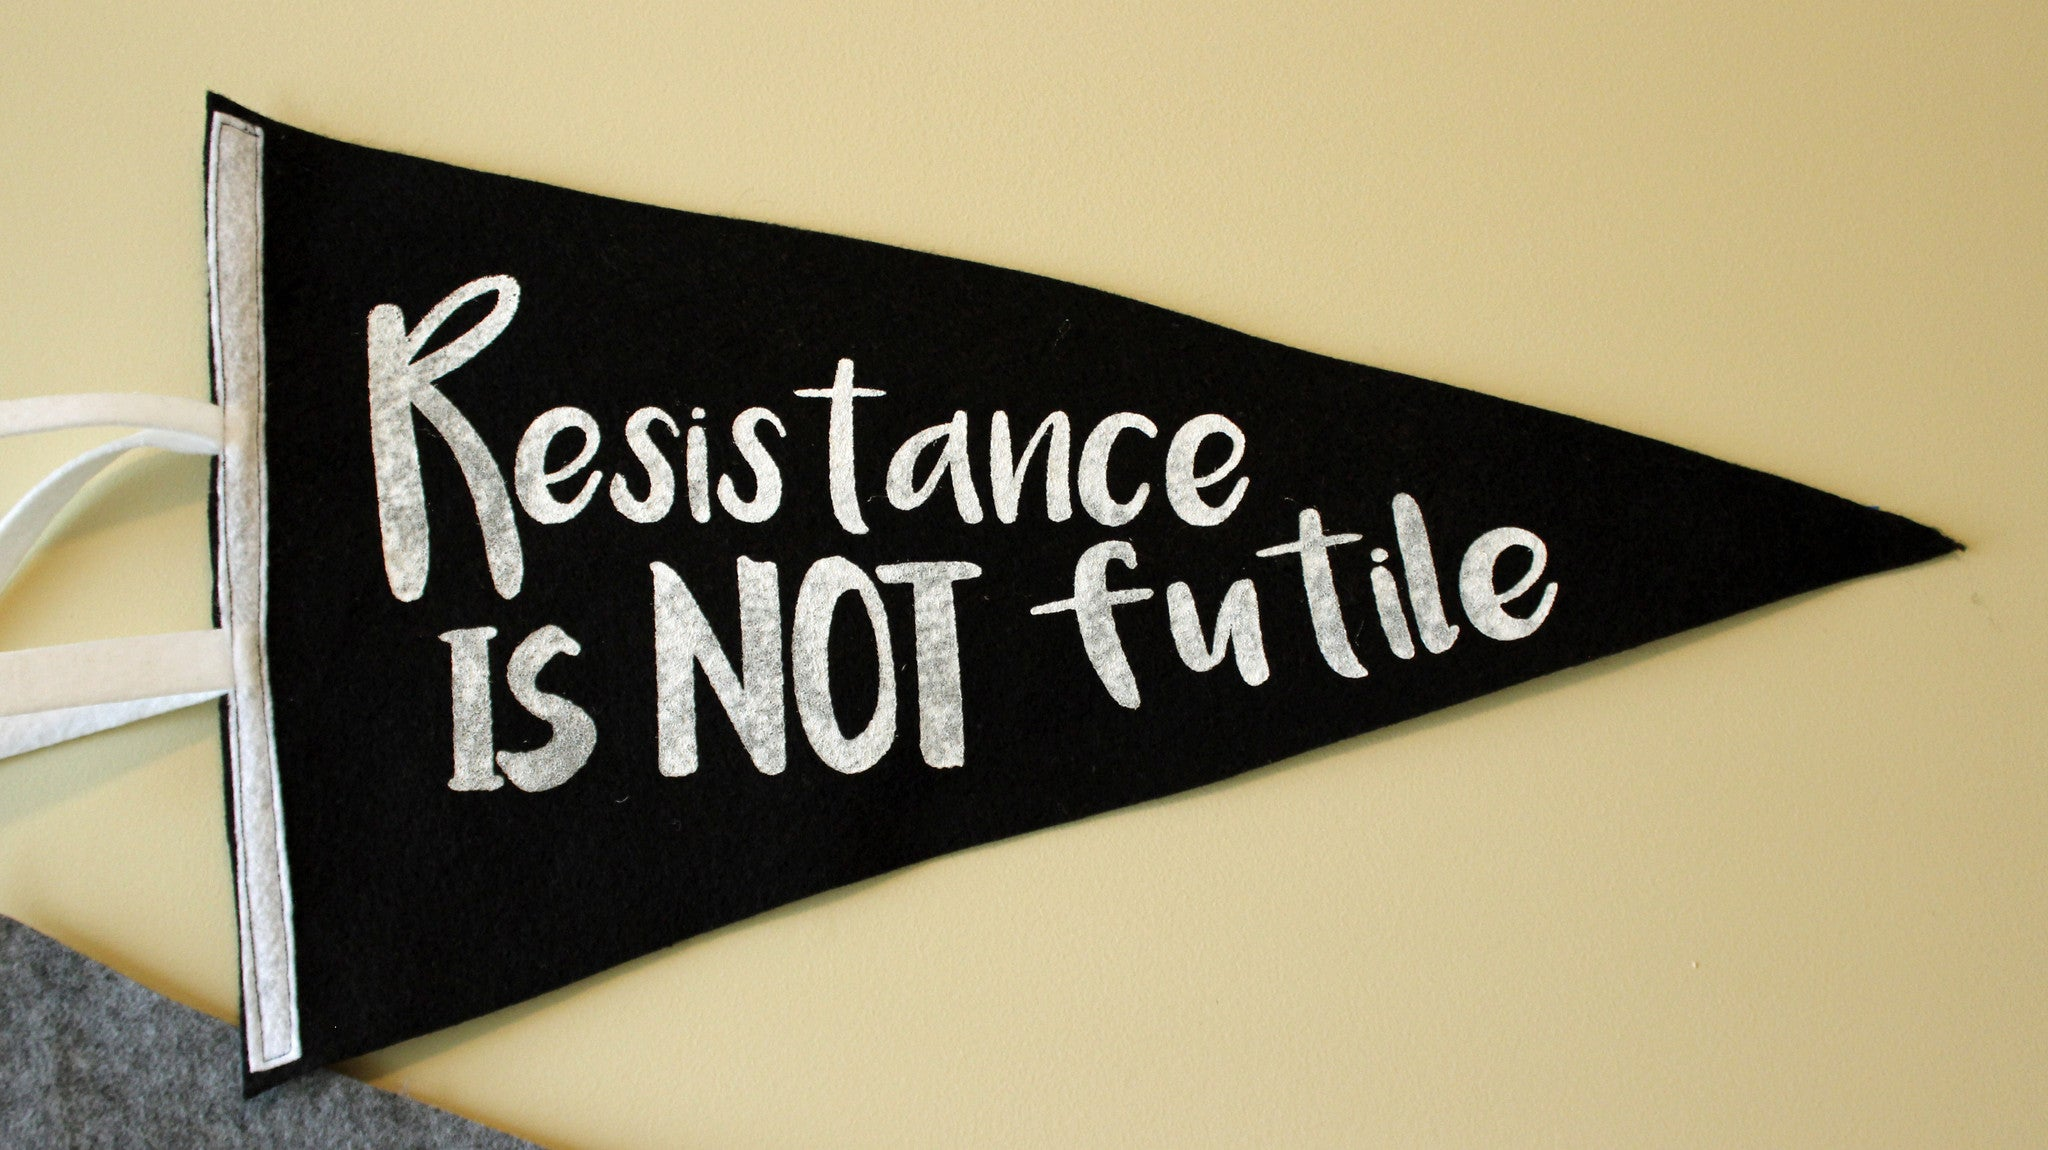 pennant art - Resist and Persist